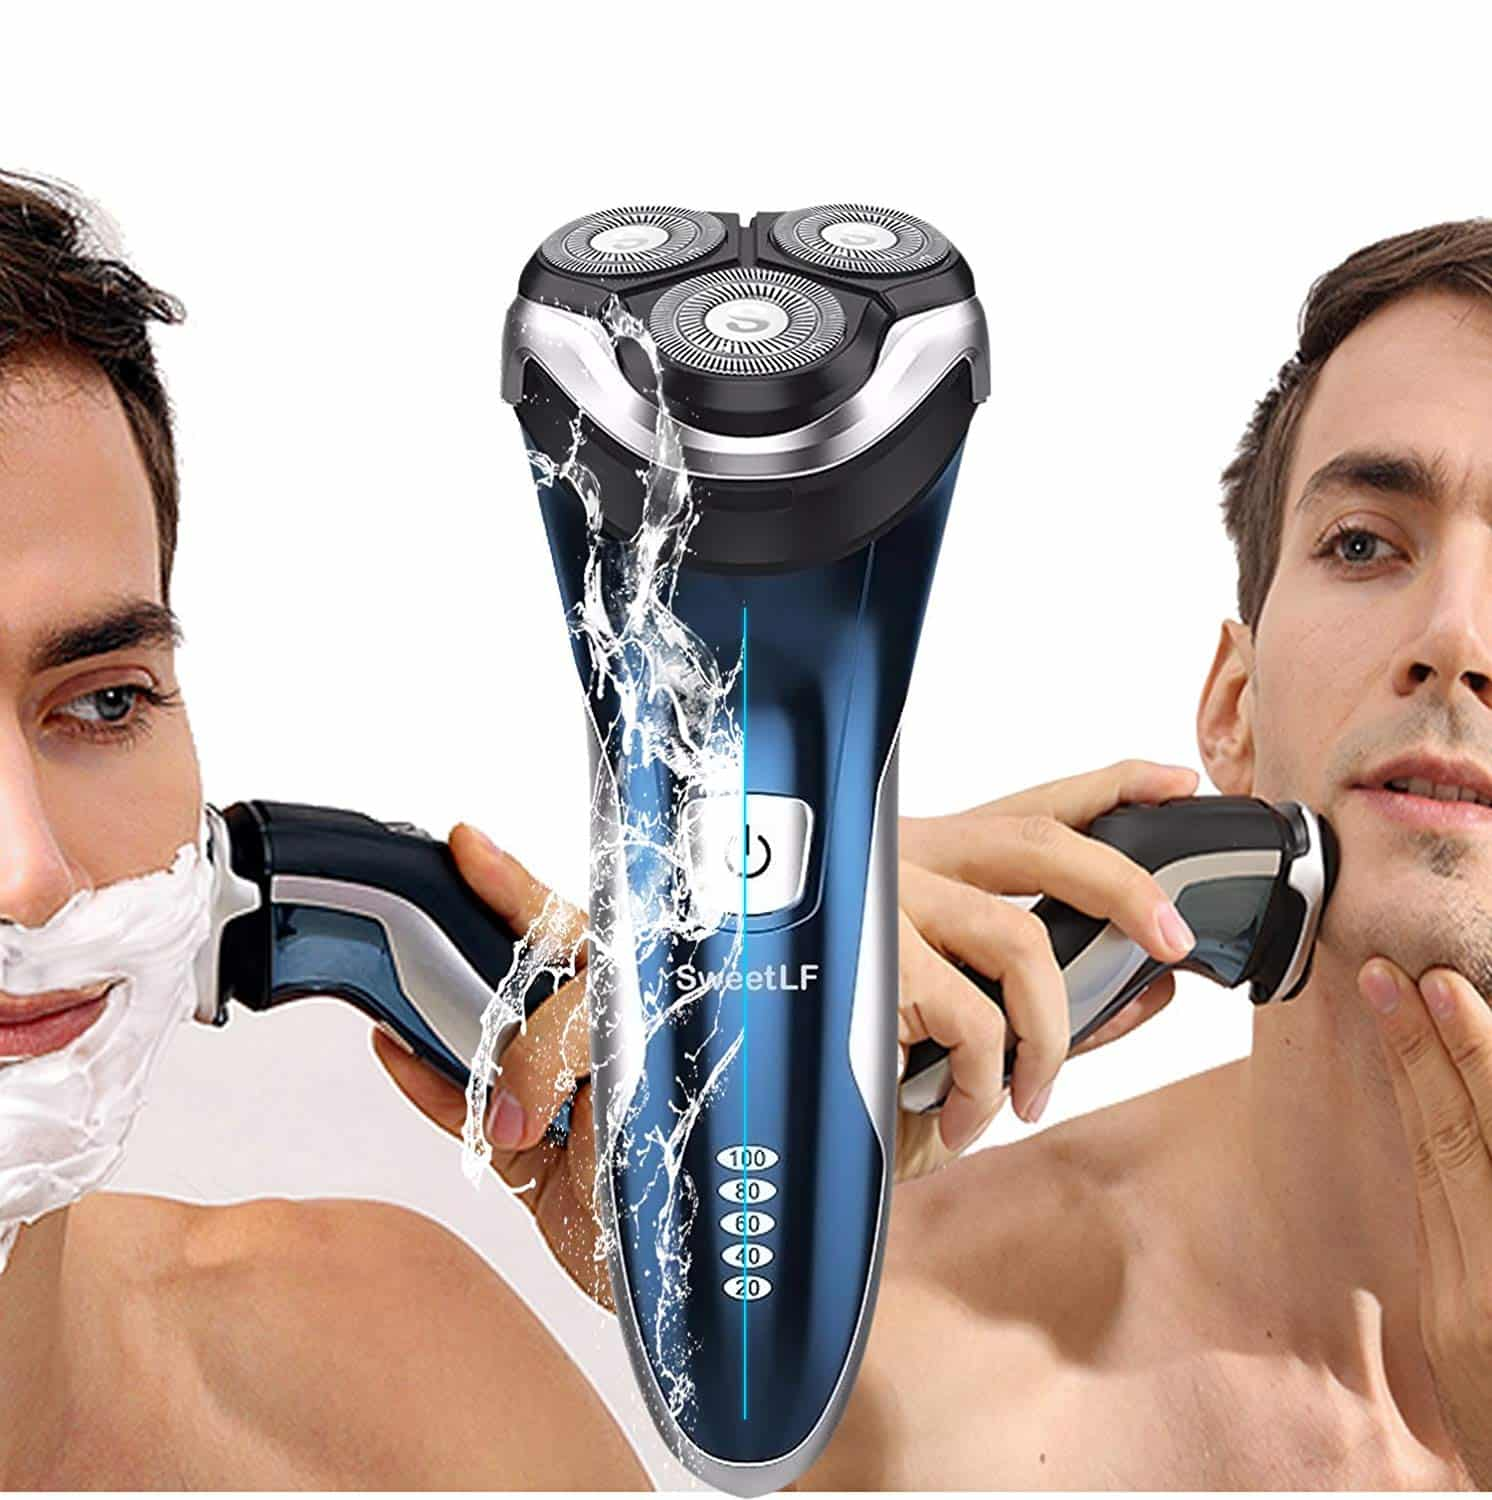 Top 10 Best Electric Shavers in 2020 Reviews & Buyer's Guide